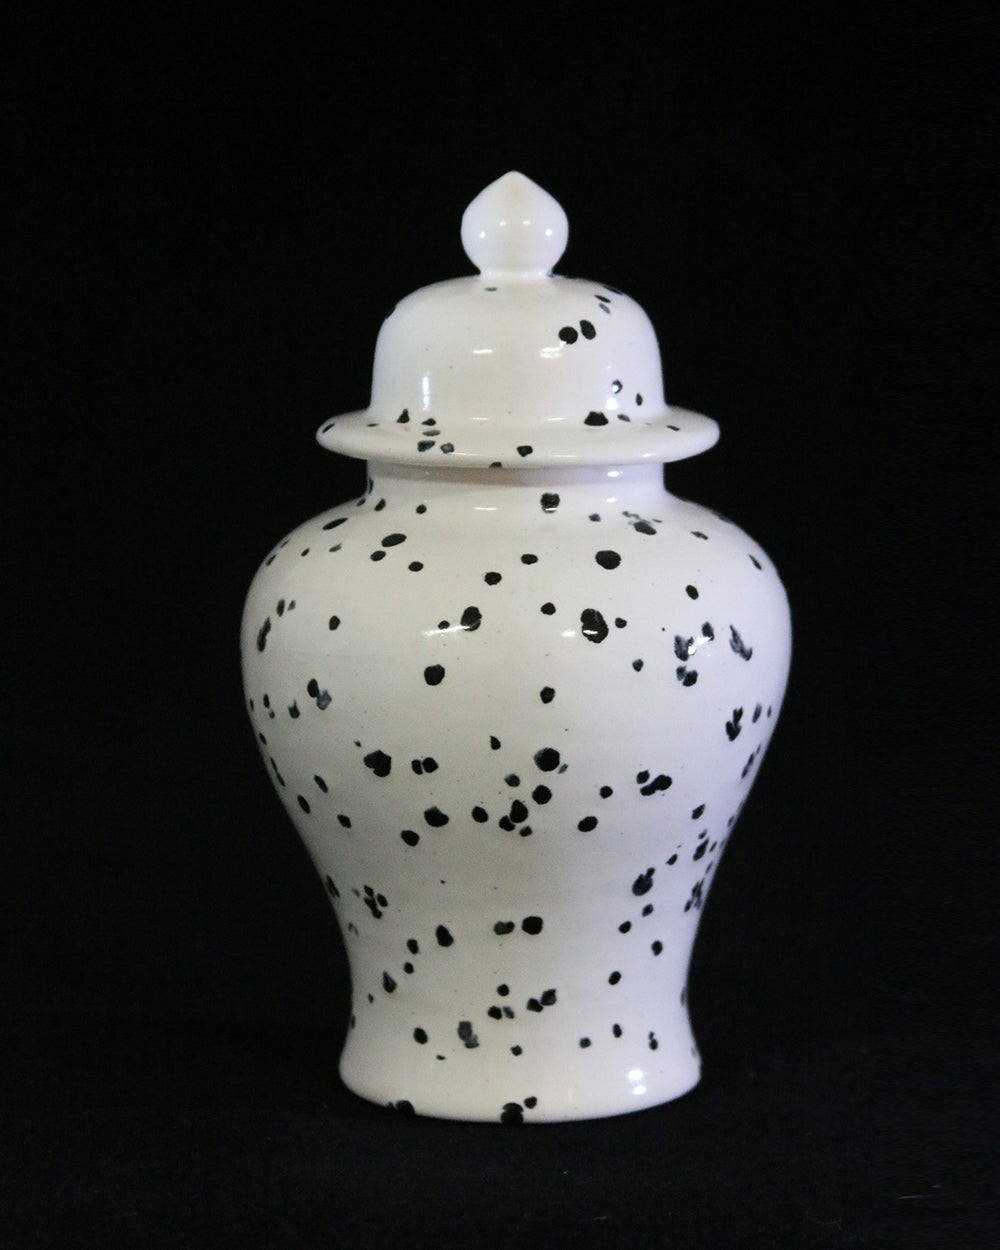 Hancrafted Ceramic Urn - Ink Spots - Small